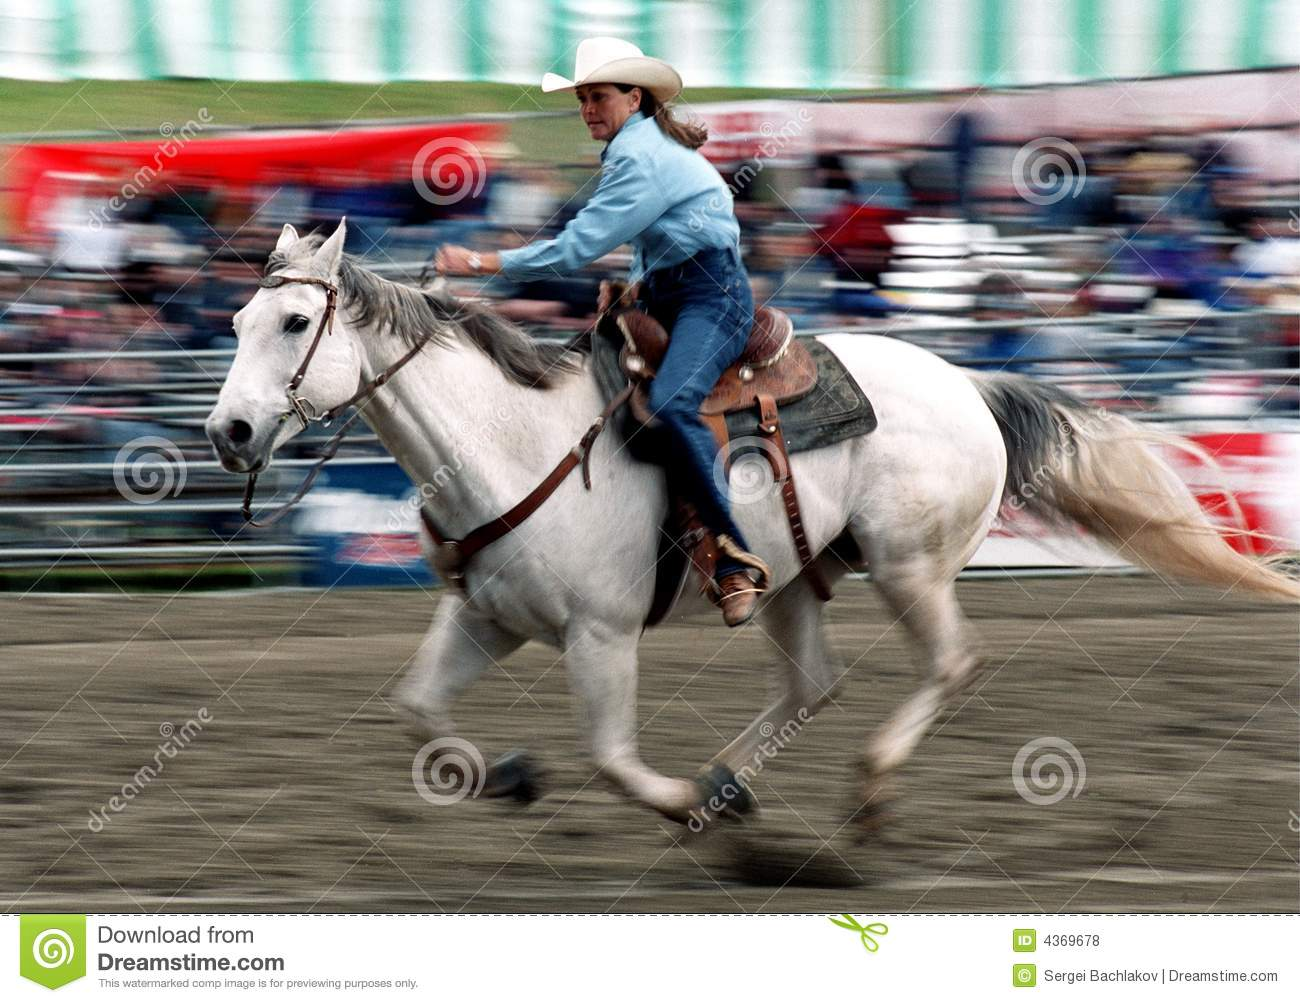 Young Rodeo Princess Barrel Racing For The First Time High